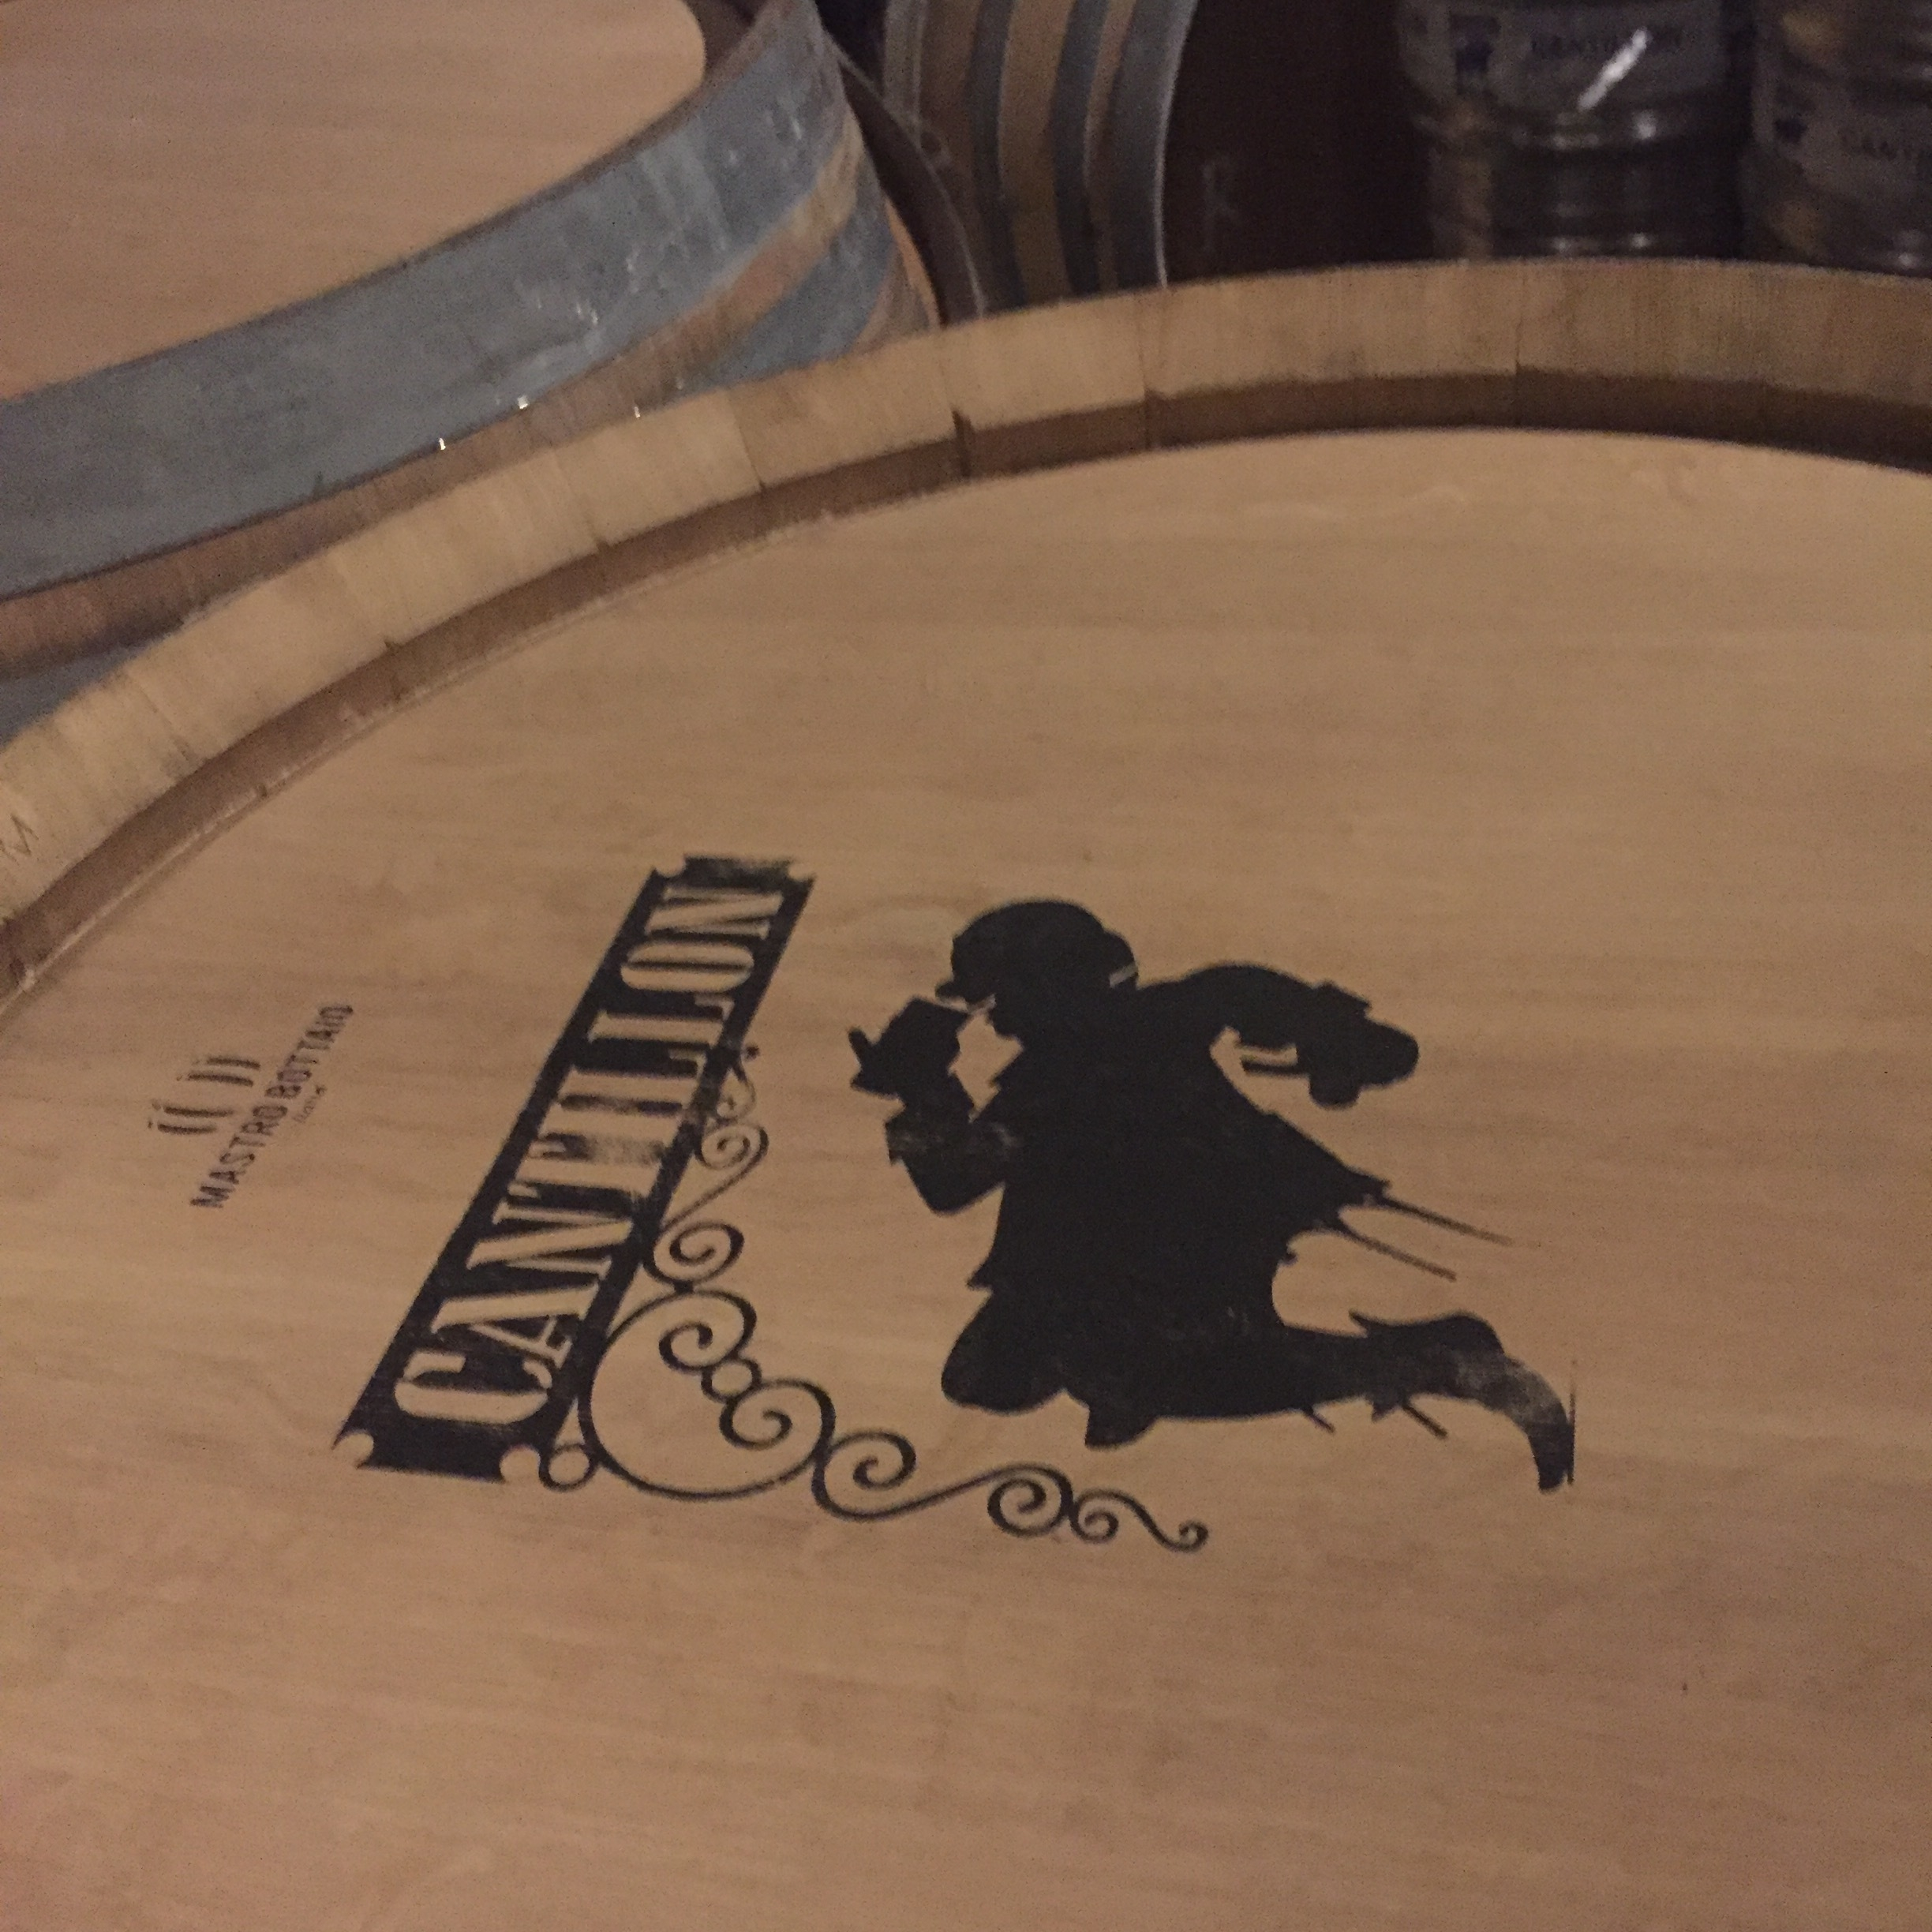 A barrel at Cantillon from my visit to Belgium in 2017.